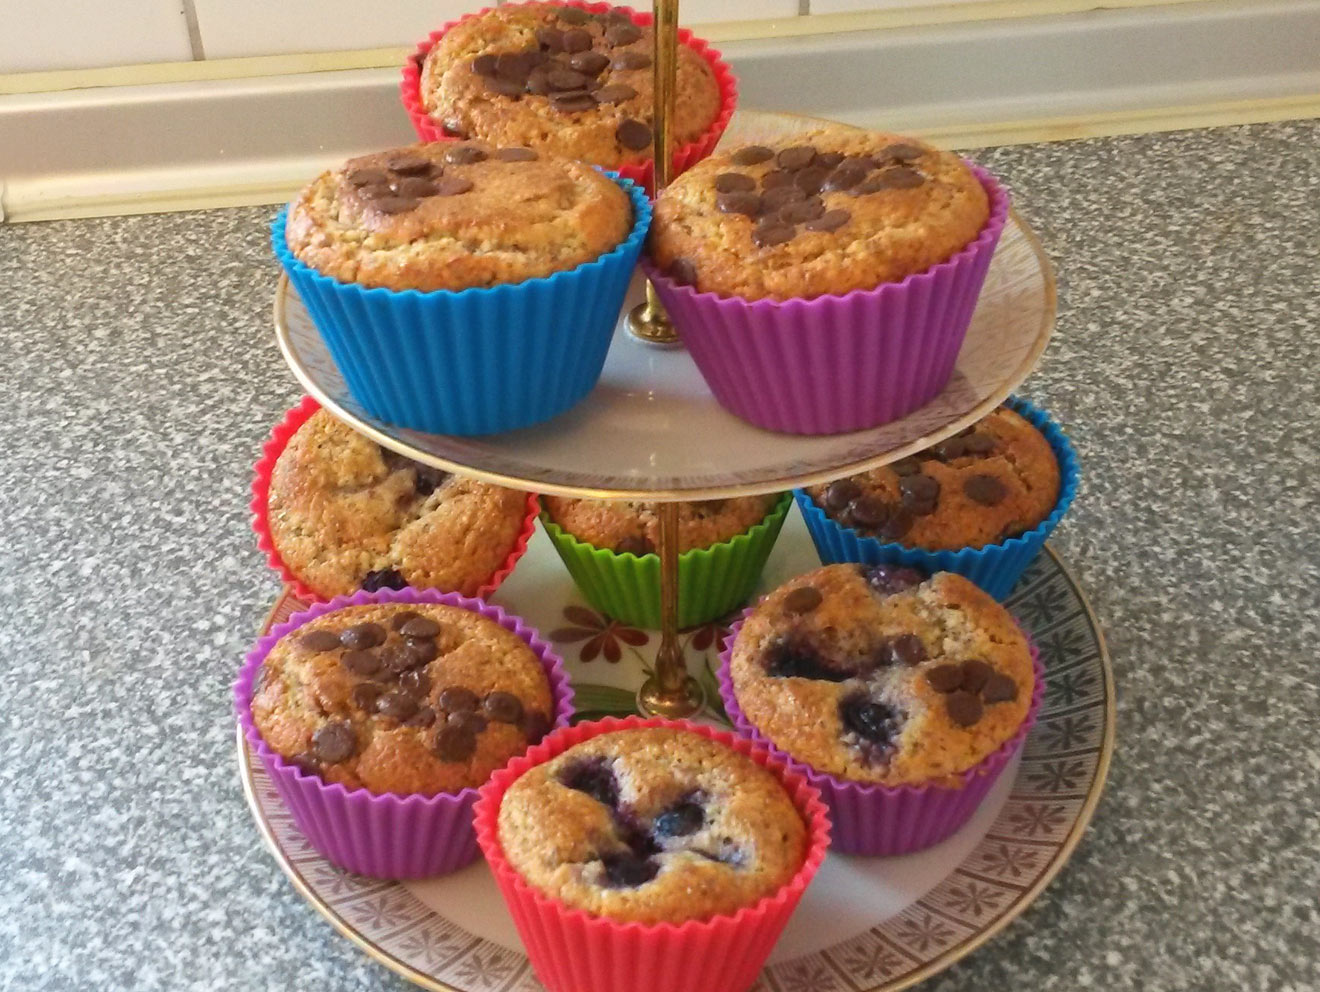 Low Carb Muffins Backen Das Beste Rezept Lecker